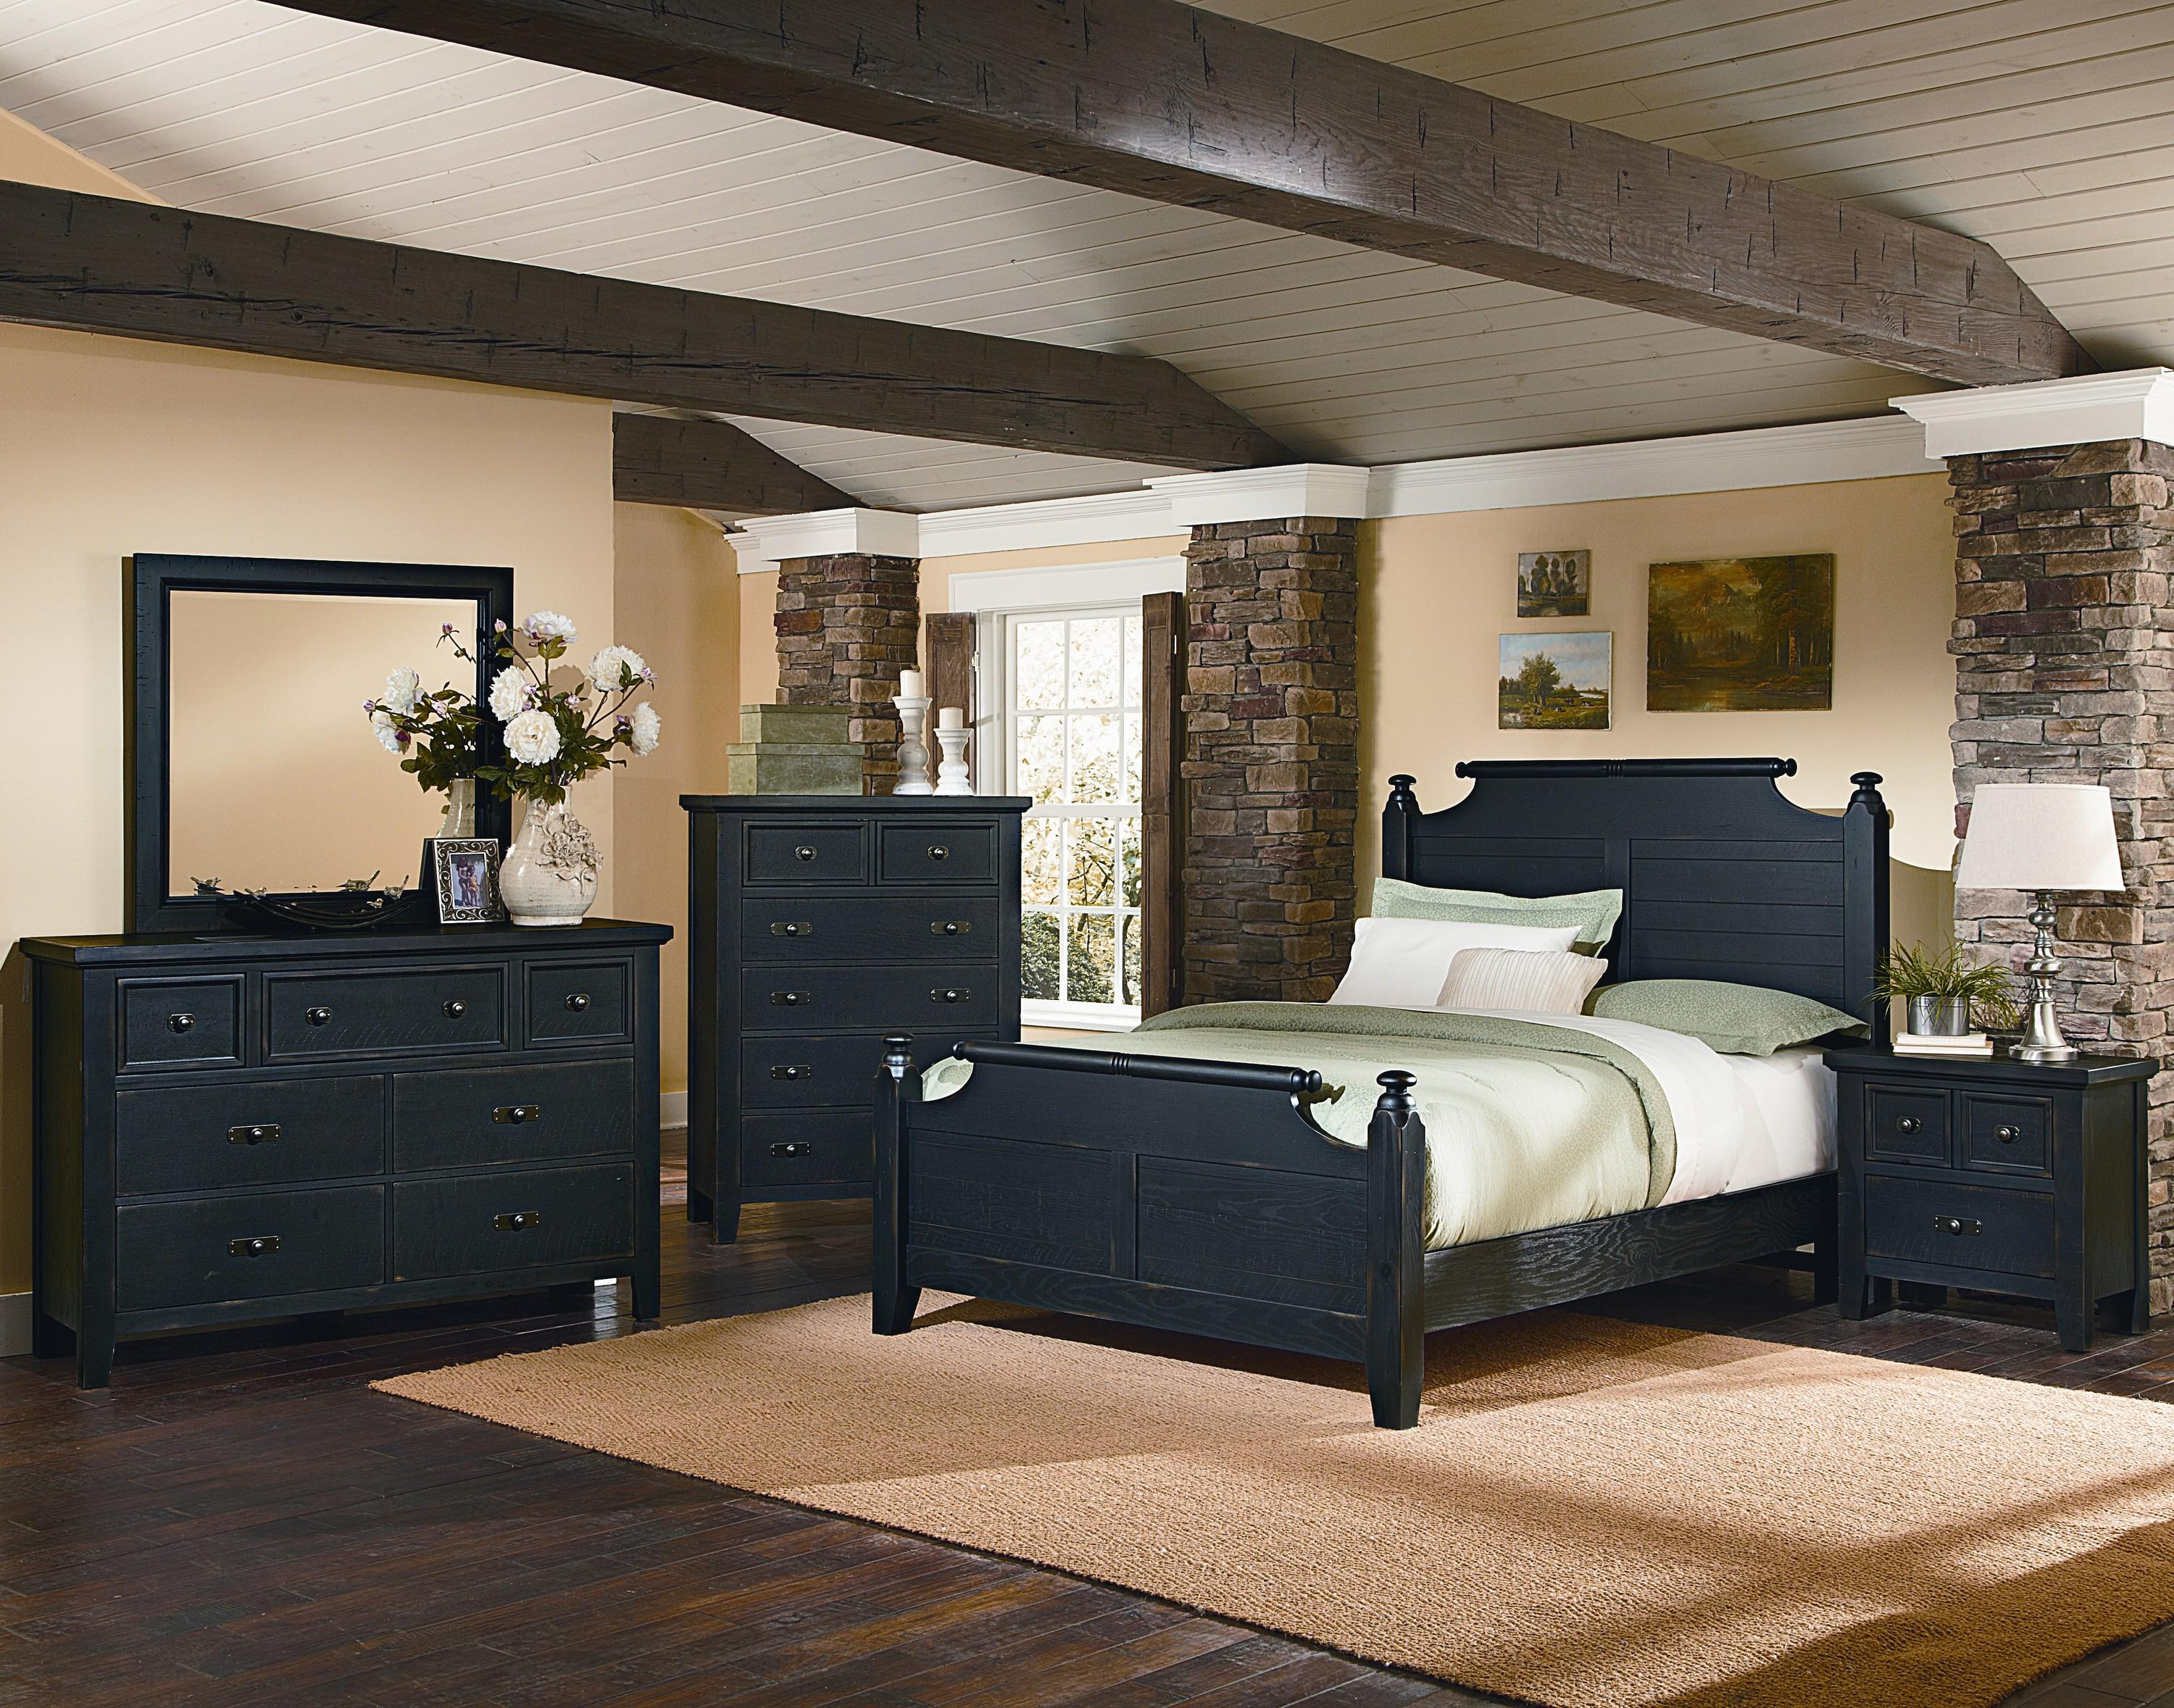 Vaughan Bassett Timber Mill King Bedroom Group - Item Number: BB56 K Bedroom Group 2